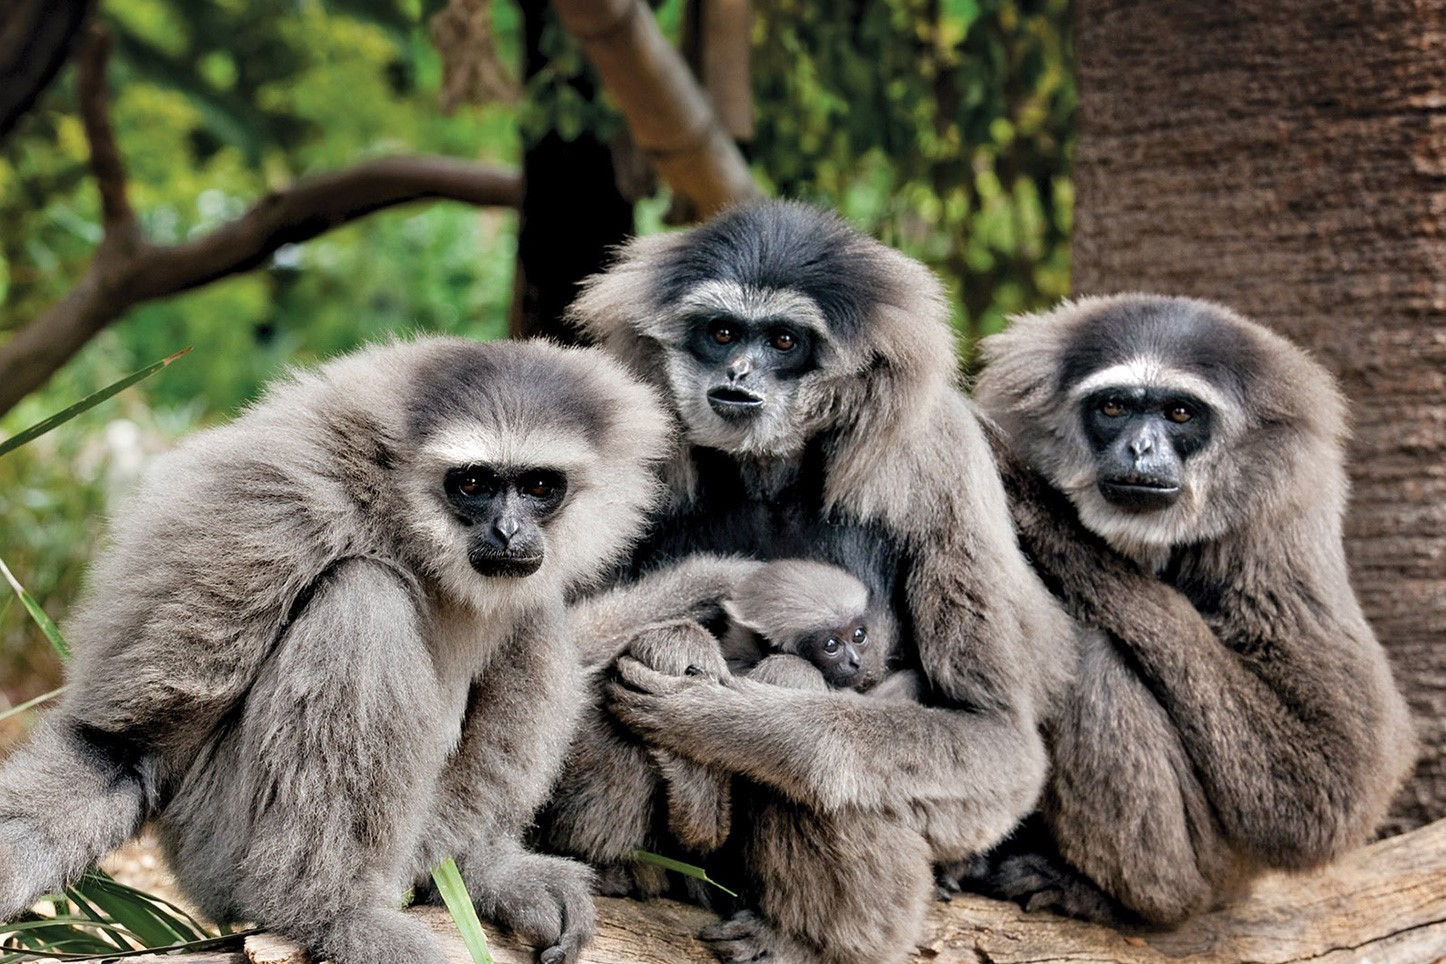 Best Ethical Rehabilitation Centres in Phuket - The Gibbon Rehabilitation Project